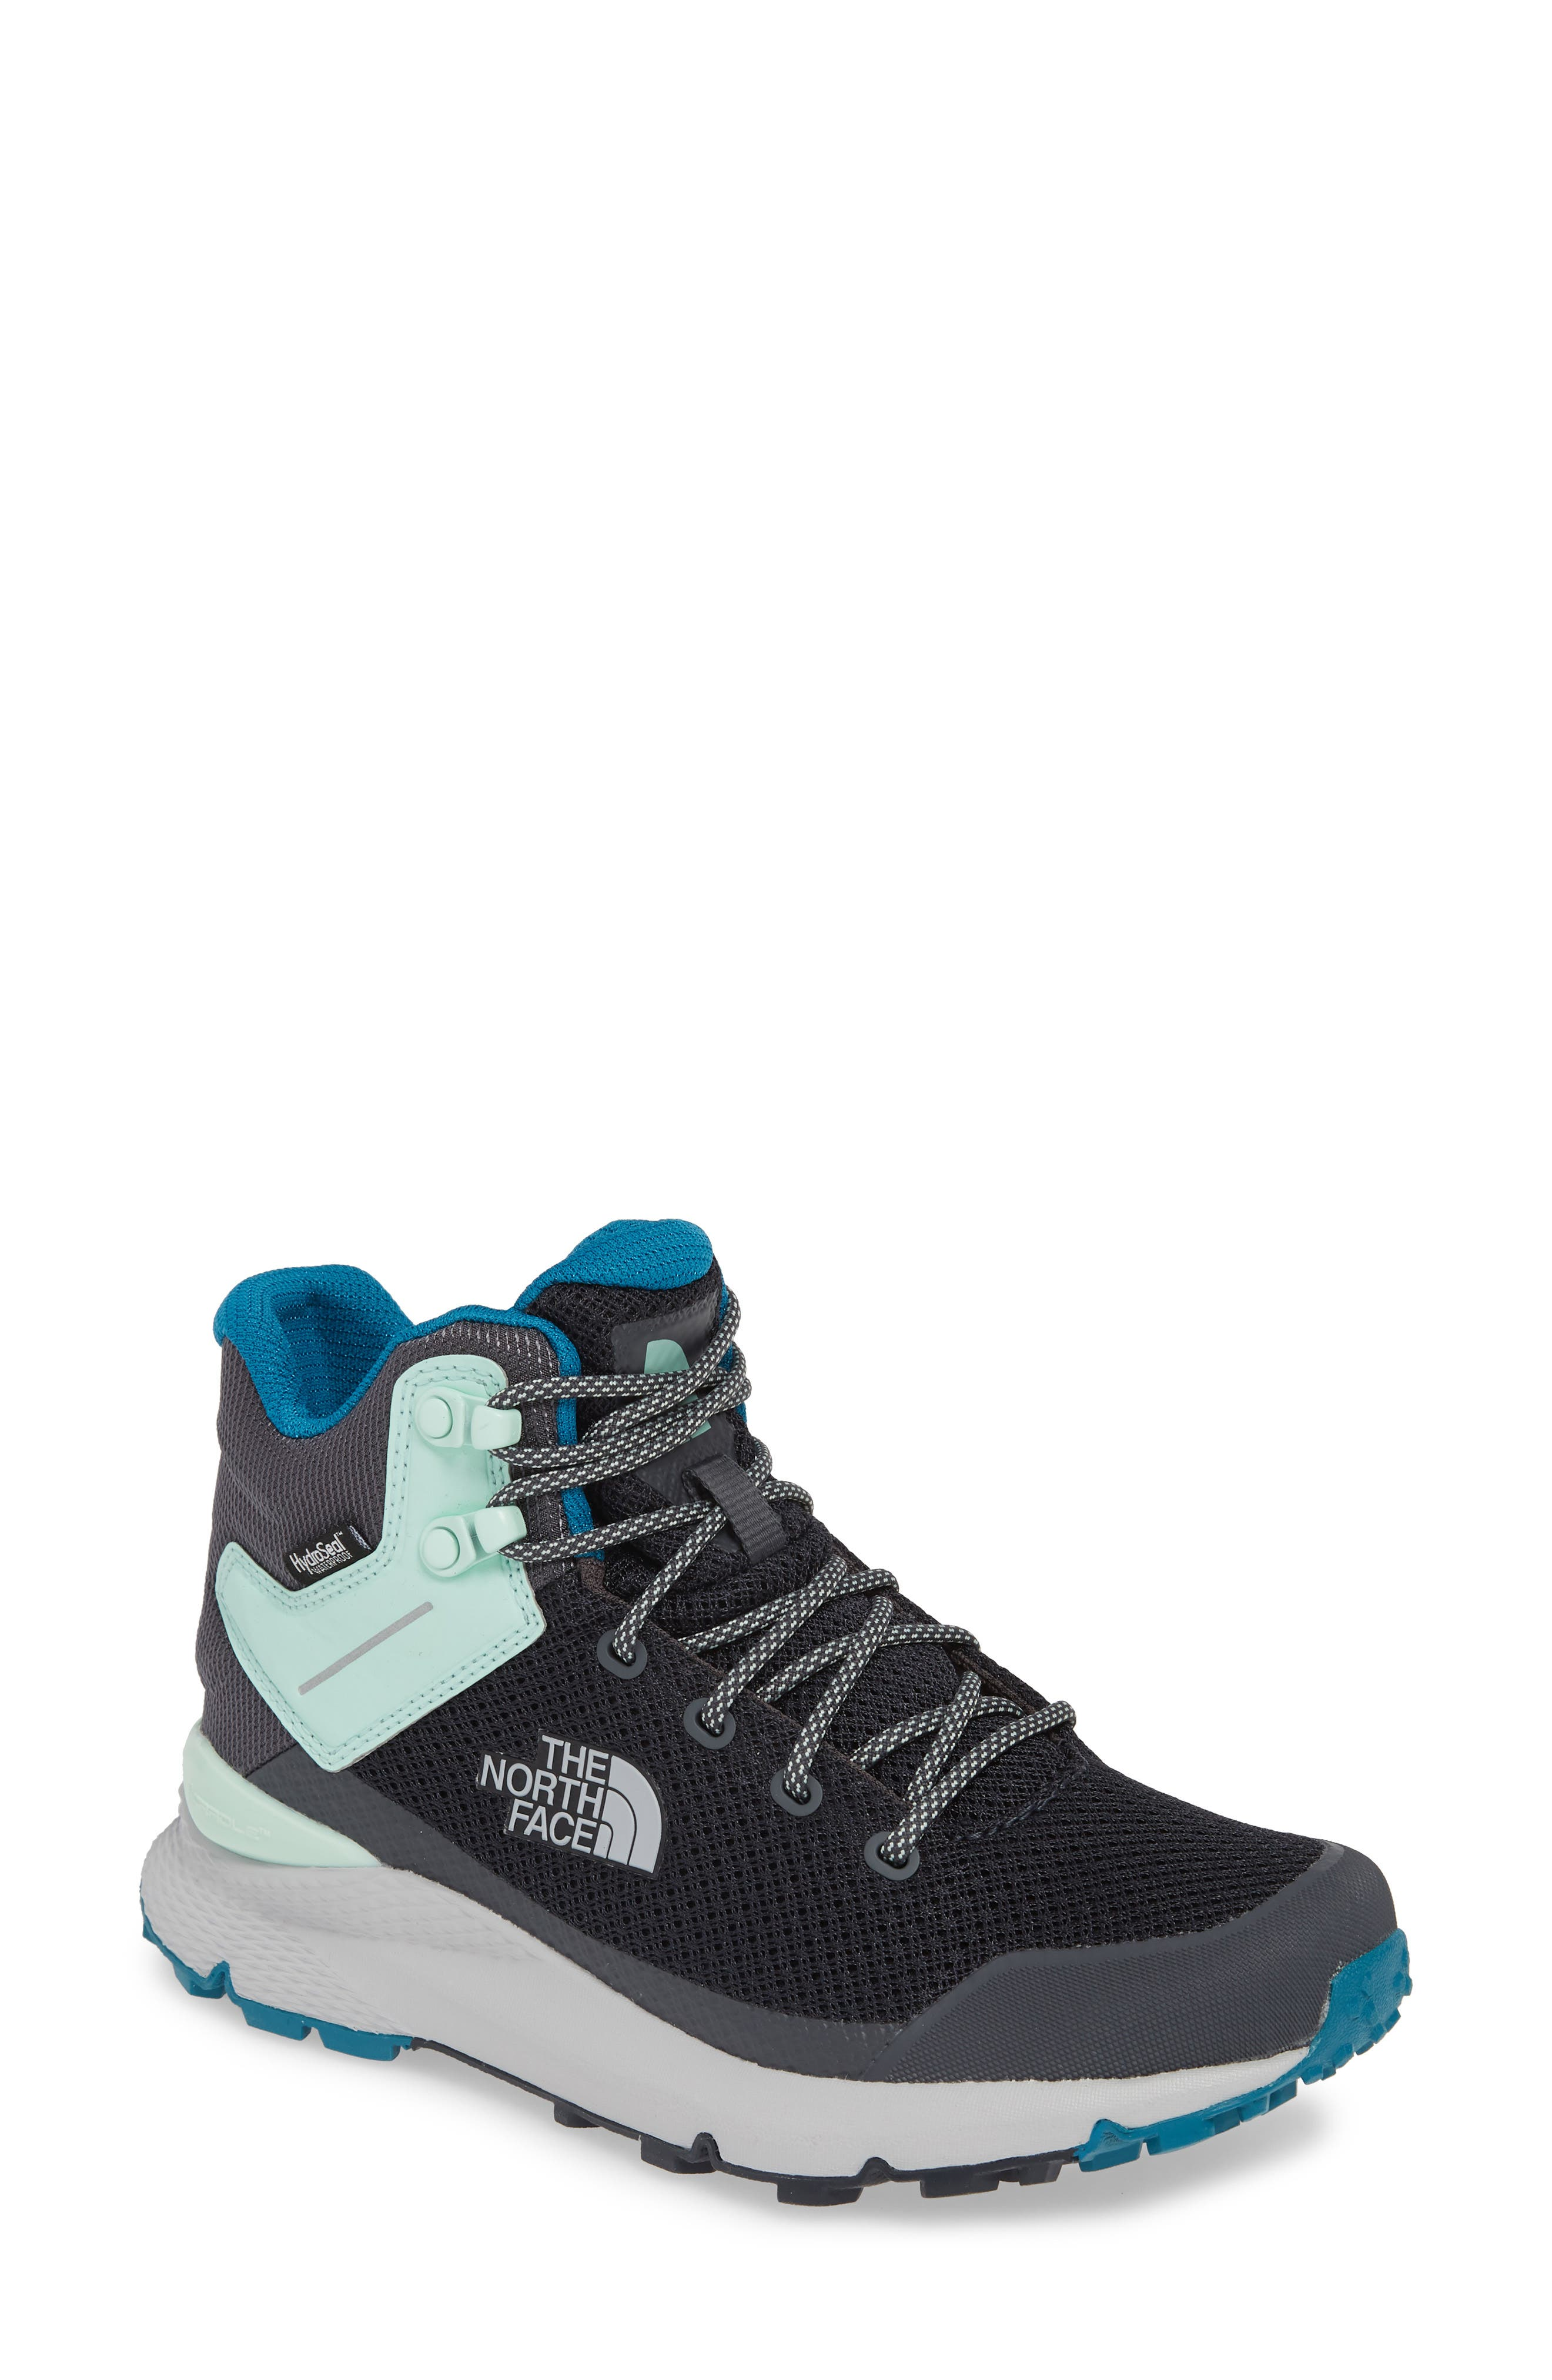 The North Face Vals Waterproof Mid Hiking Boot- Grey